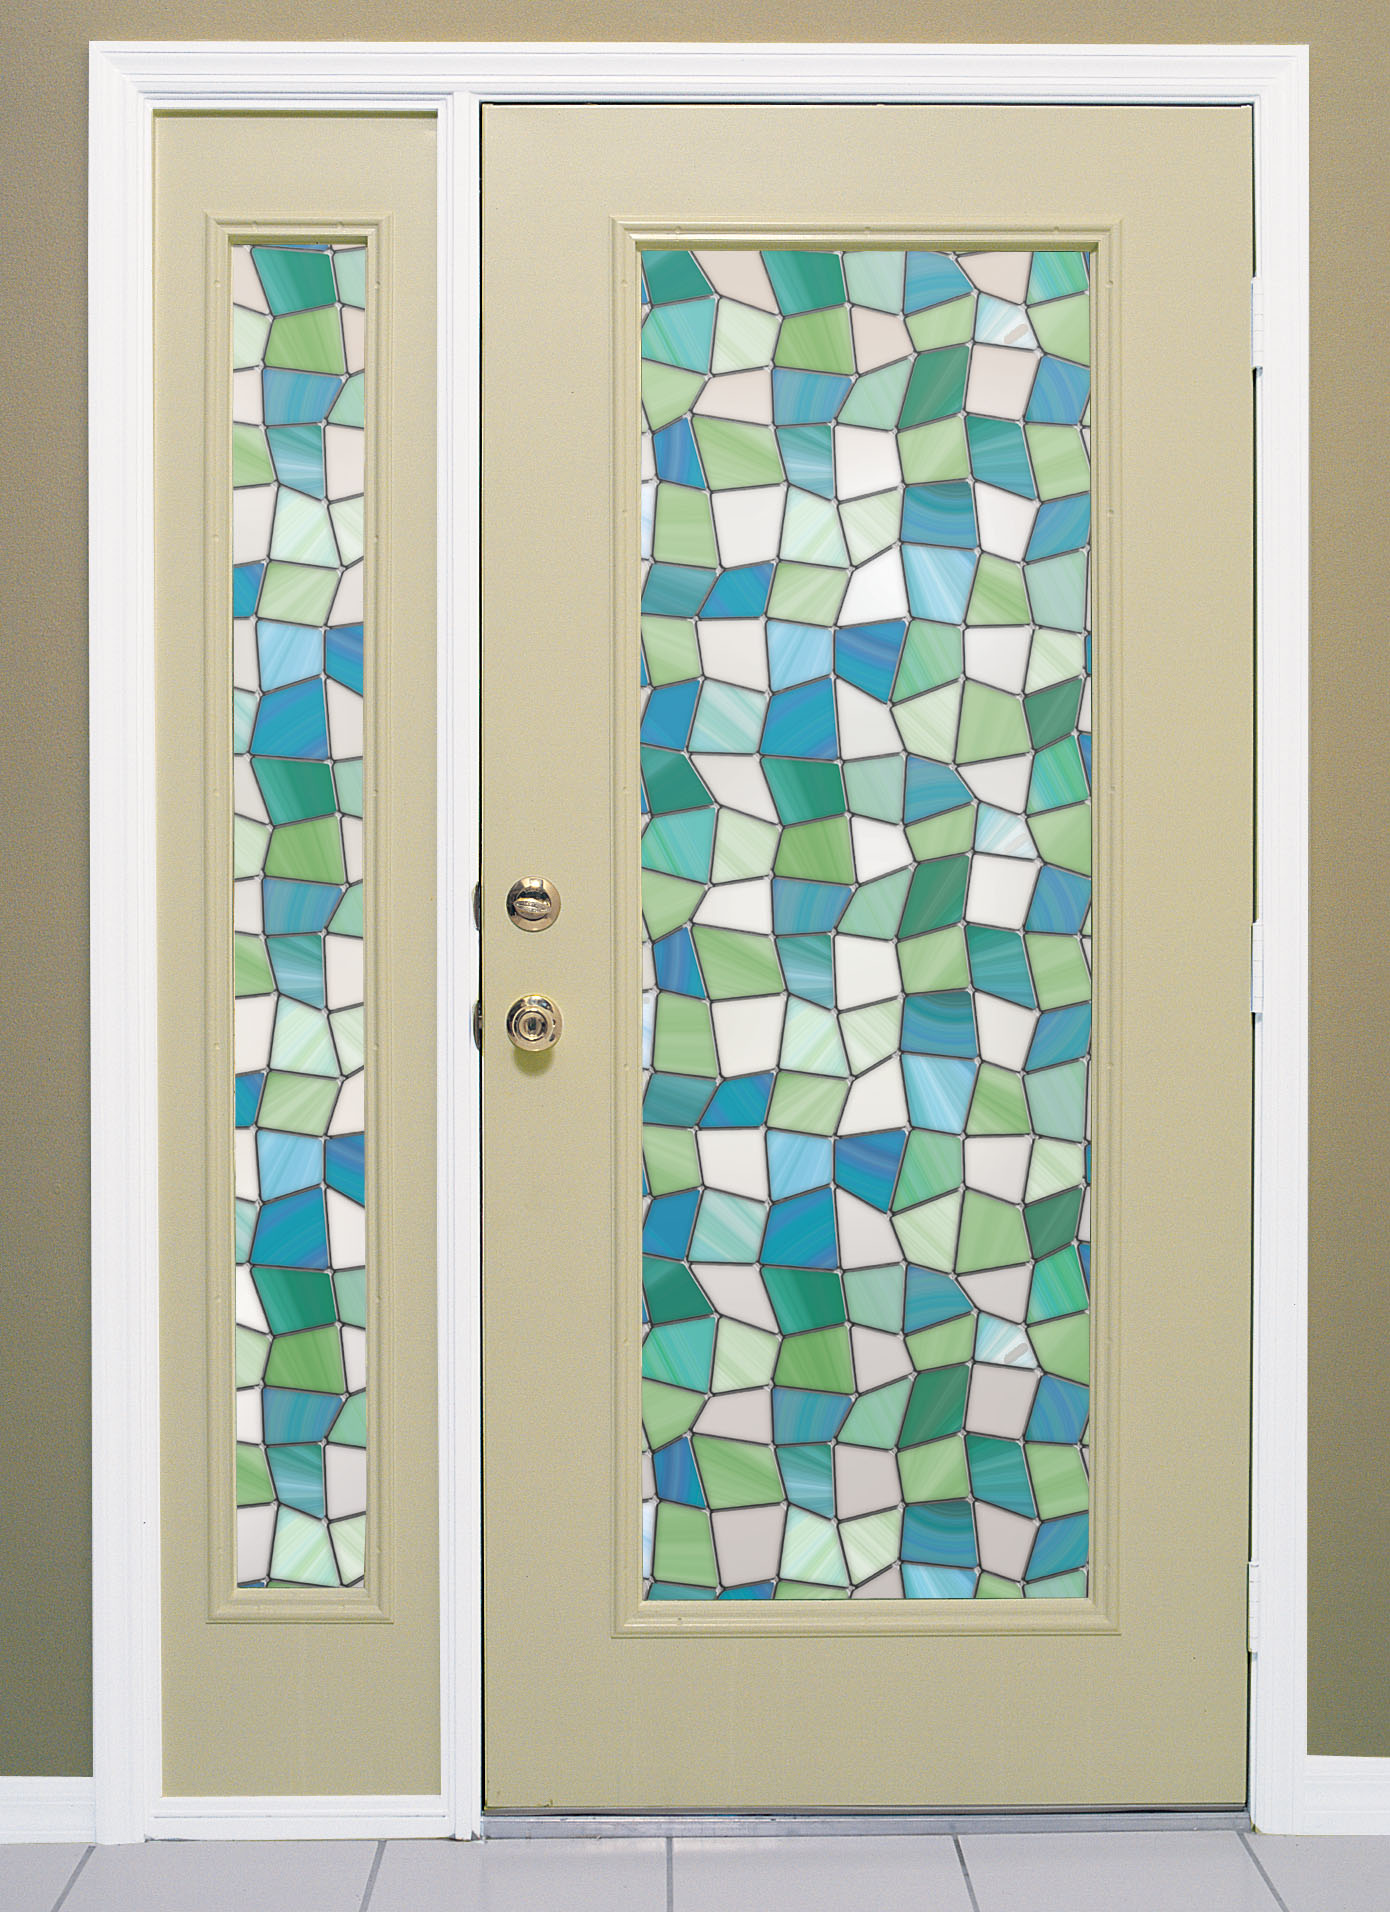 napa privacy on entry door atlantis stained glass window film on entry door and door and sidelight image - Decorative Window Film